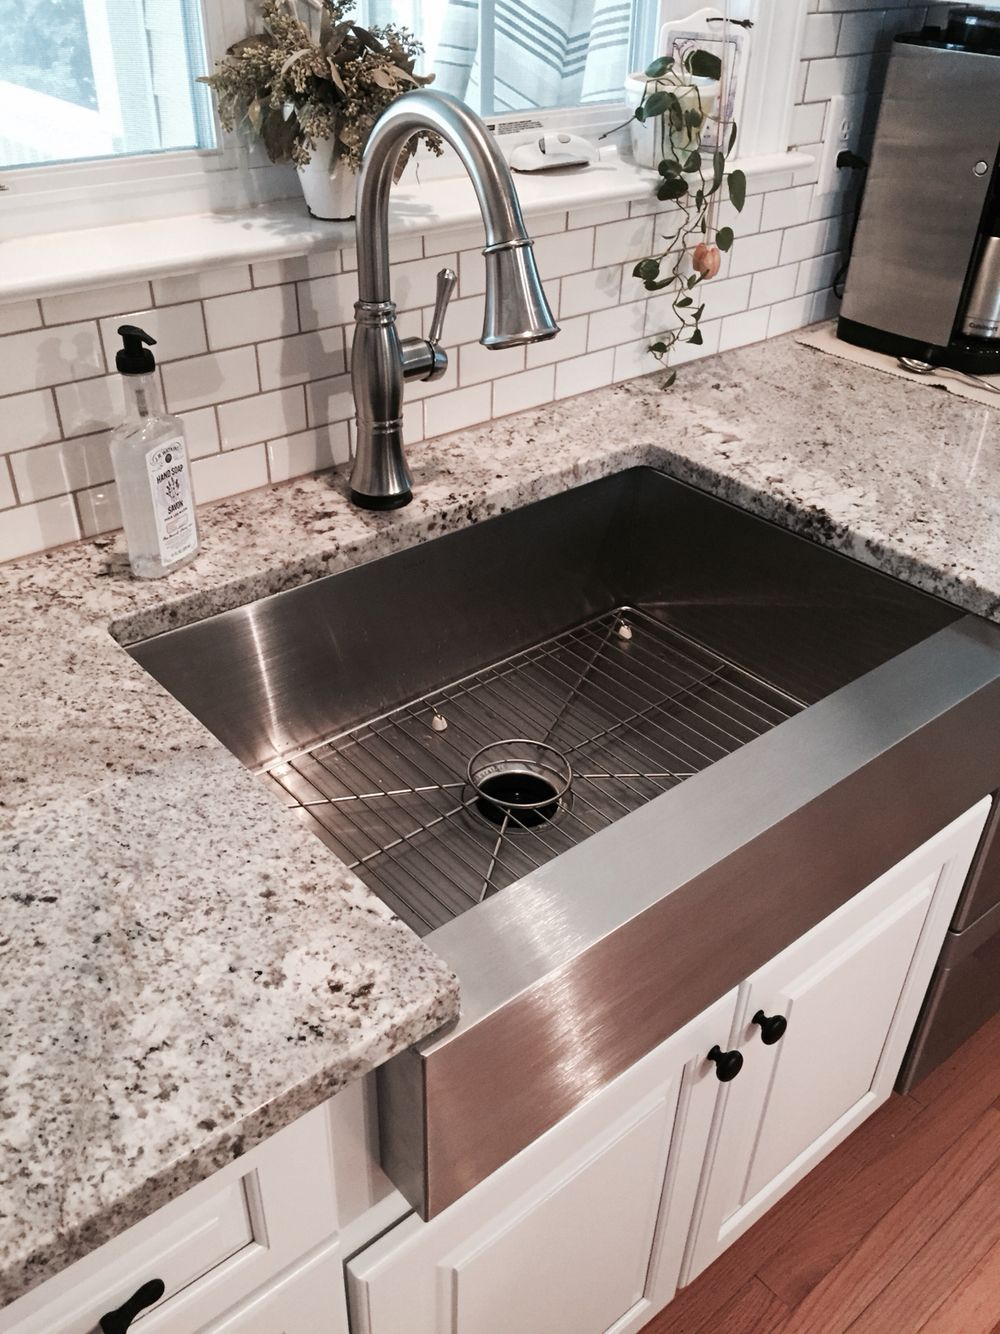 White Kitchen Cabinet Makeover With Stainless Steel Farmhouse Sink Kitchen Cabinet Design Farmhouse Sink Kitchen Replacing Kitchen Countertops